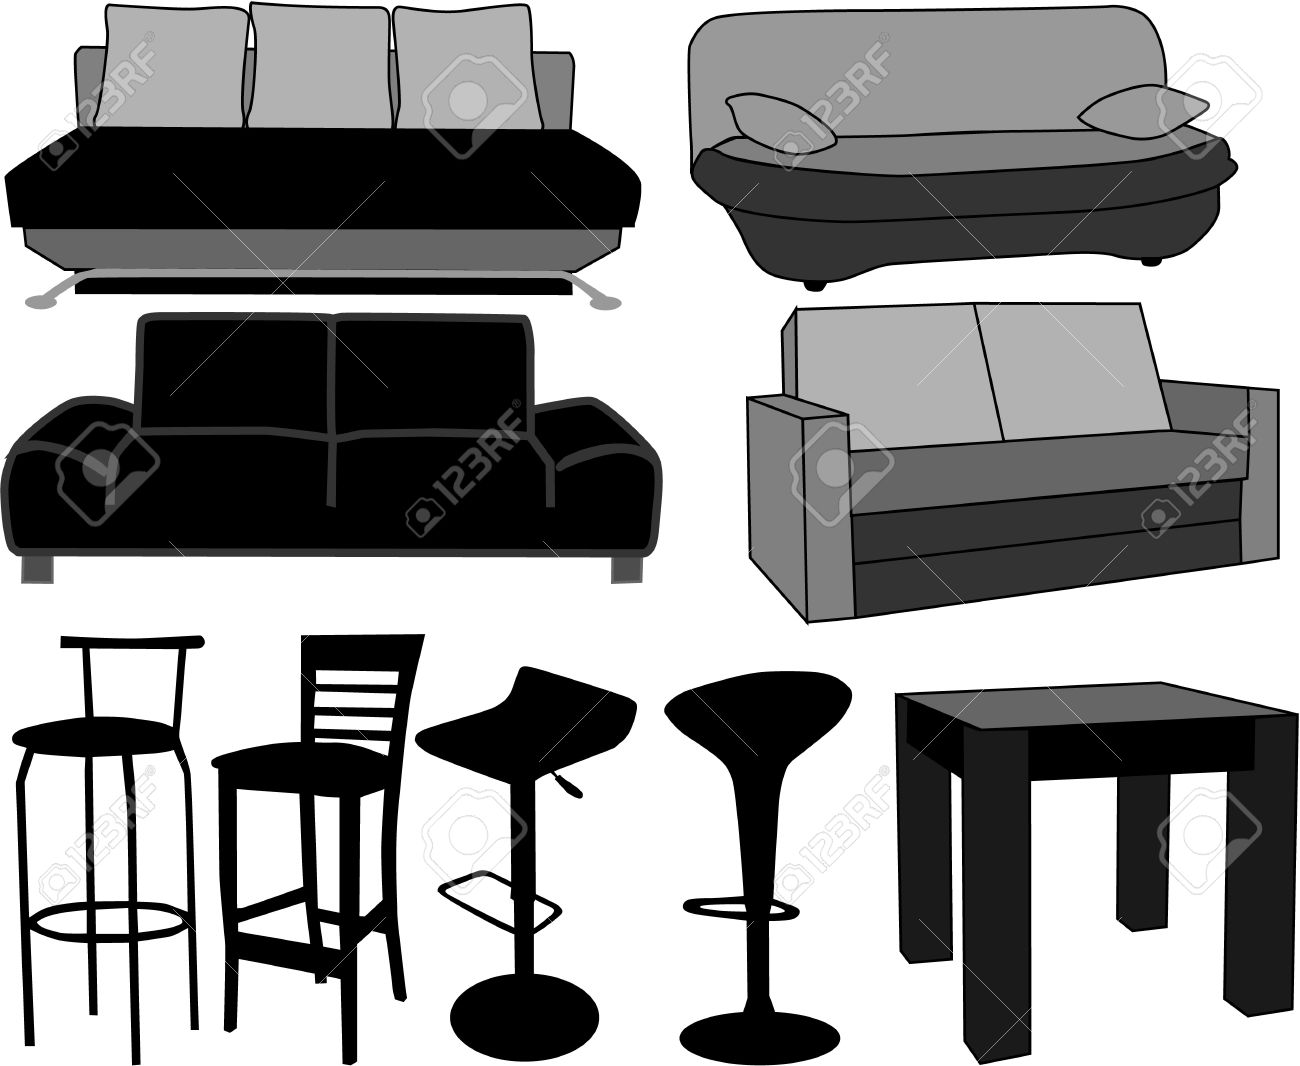 Furniture-home furnishings, working with vectors Stock Vector - 7807773